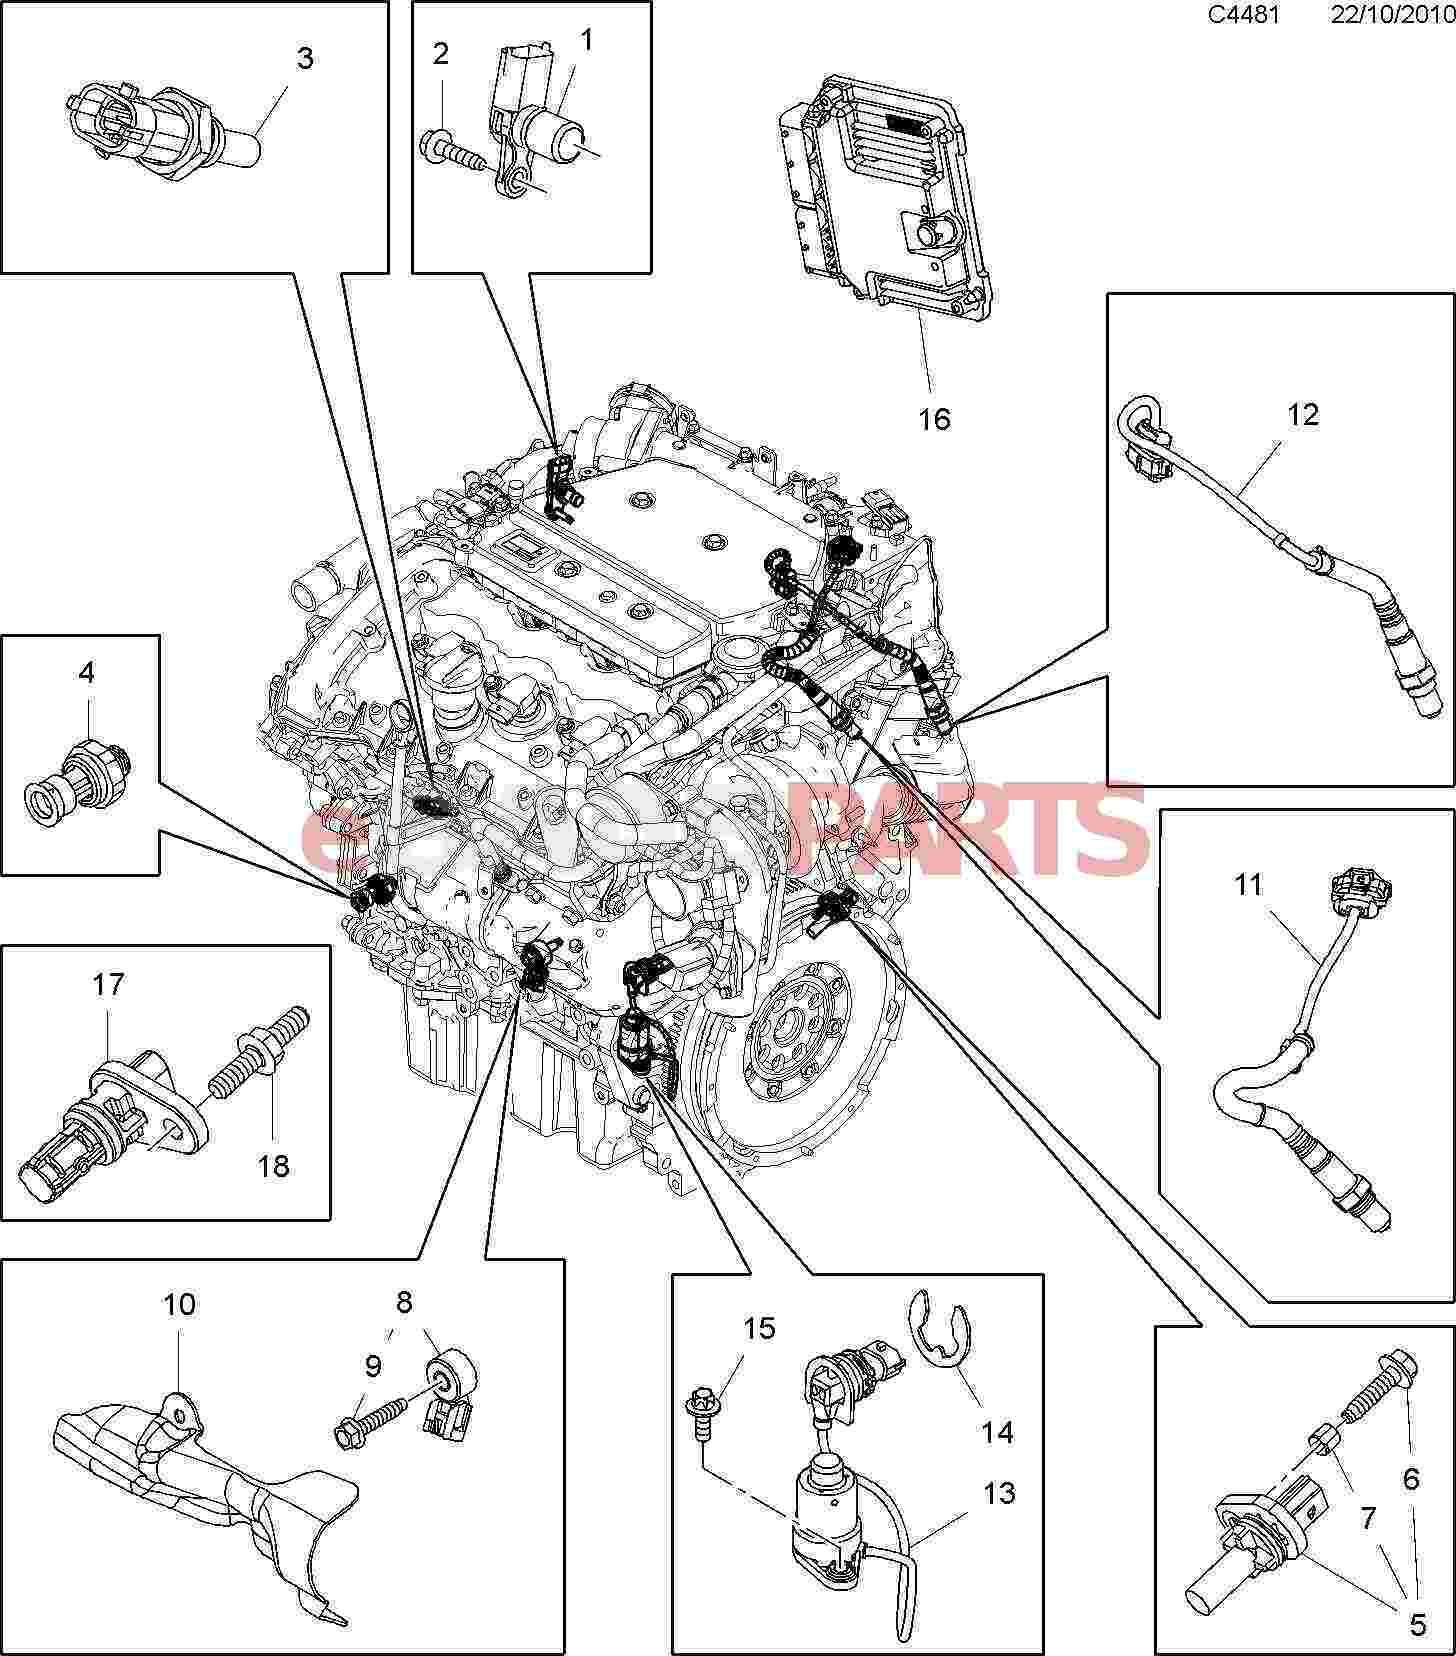 Saab Engine Diagrams Wiring Diagram Will Be A Thing 2000 9 5 Schematic Schematics U2022 Rh Schoosretailstores Com